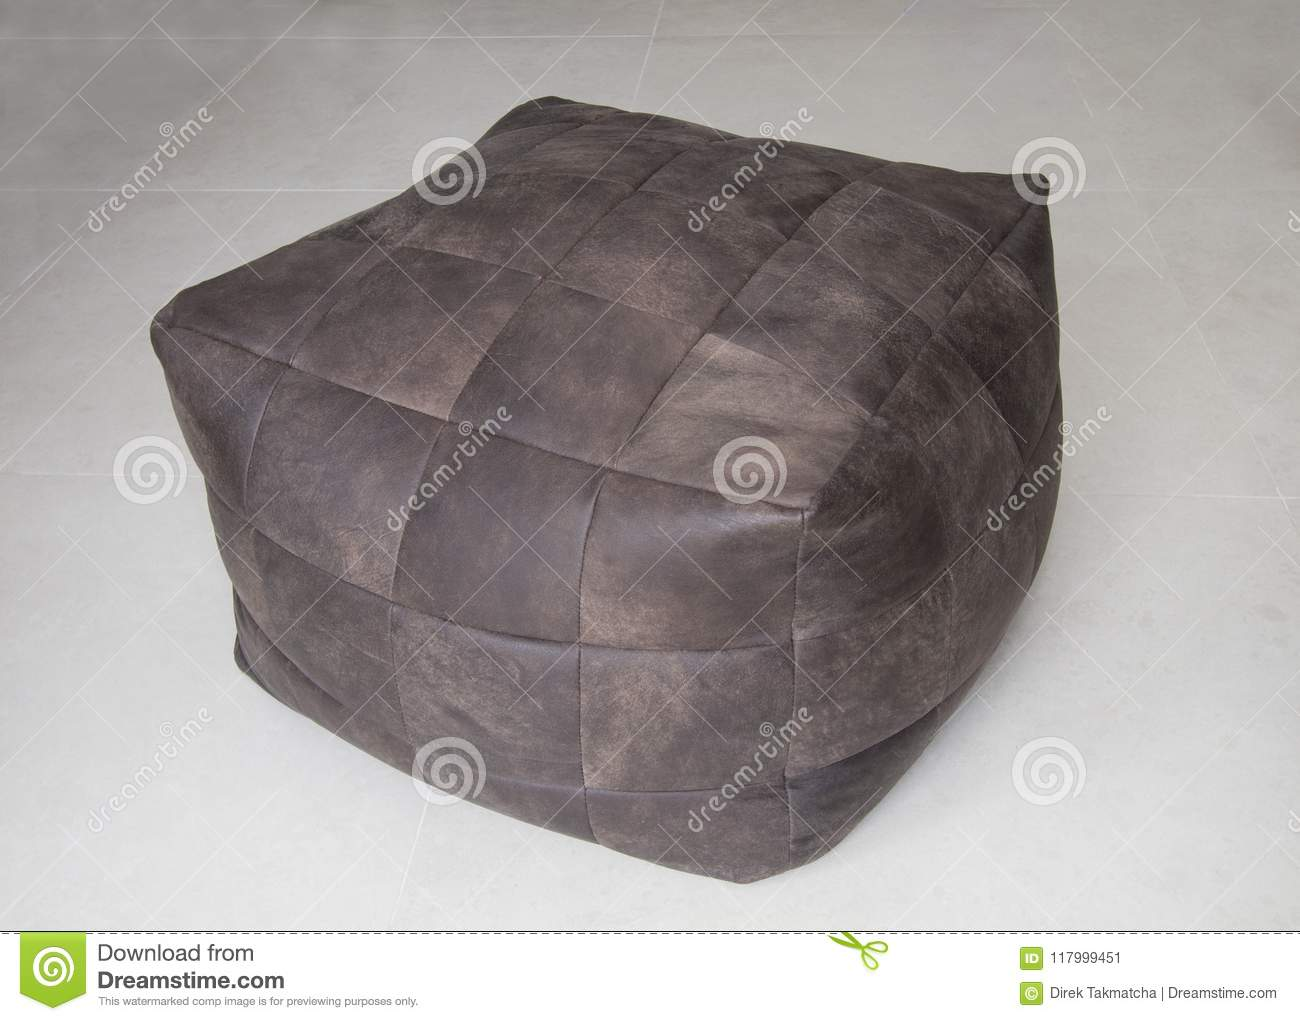 Enjoyable Brown Leather Cube Chair Stock Image Image Of Seat 117999451 Evergreenethics Interior Chair Design Evergreenethicsorg